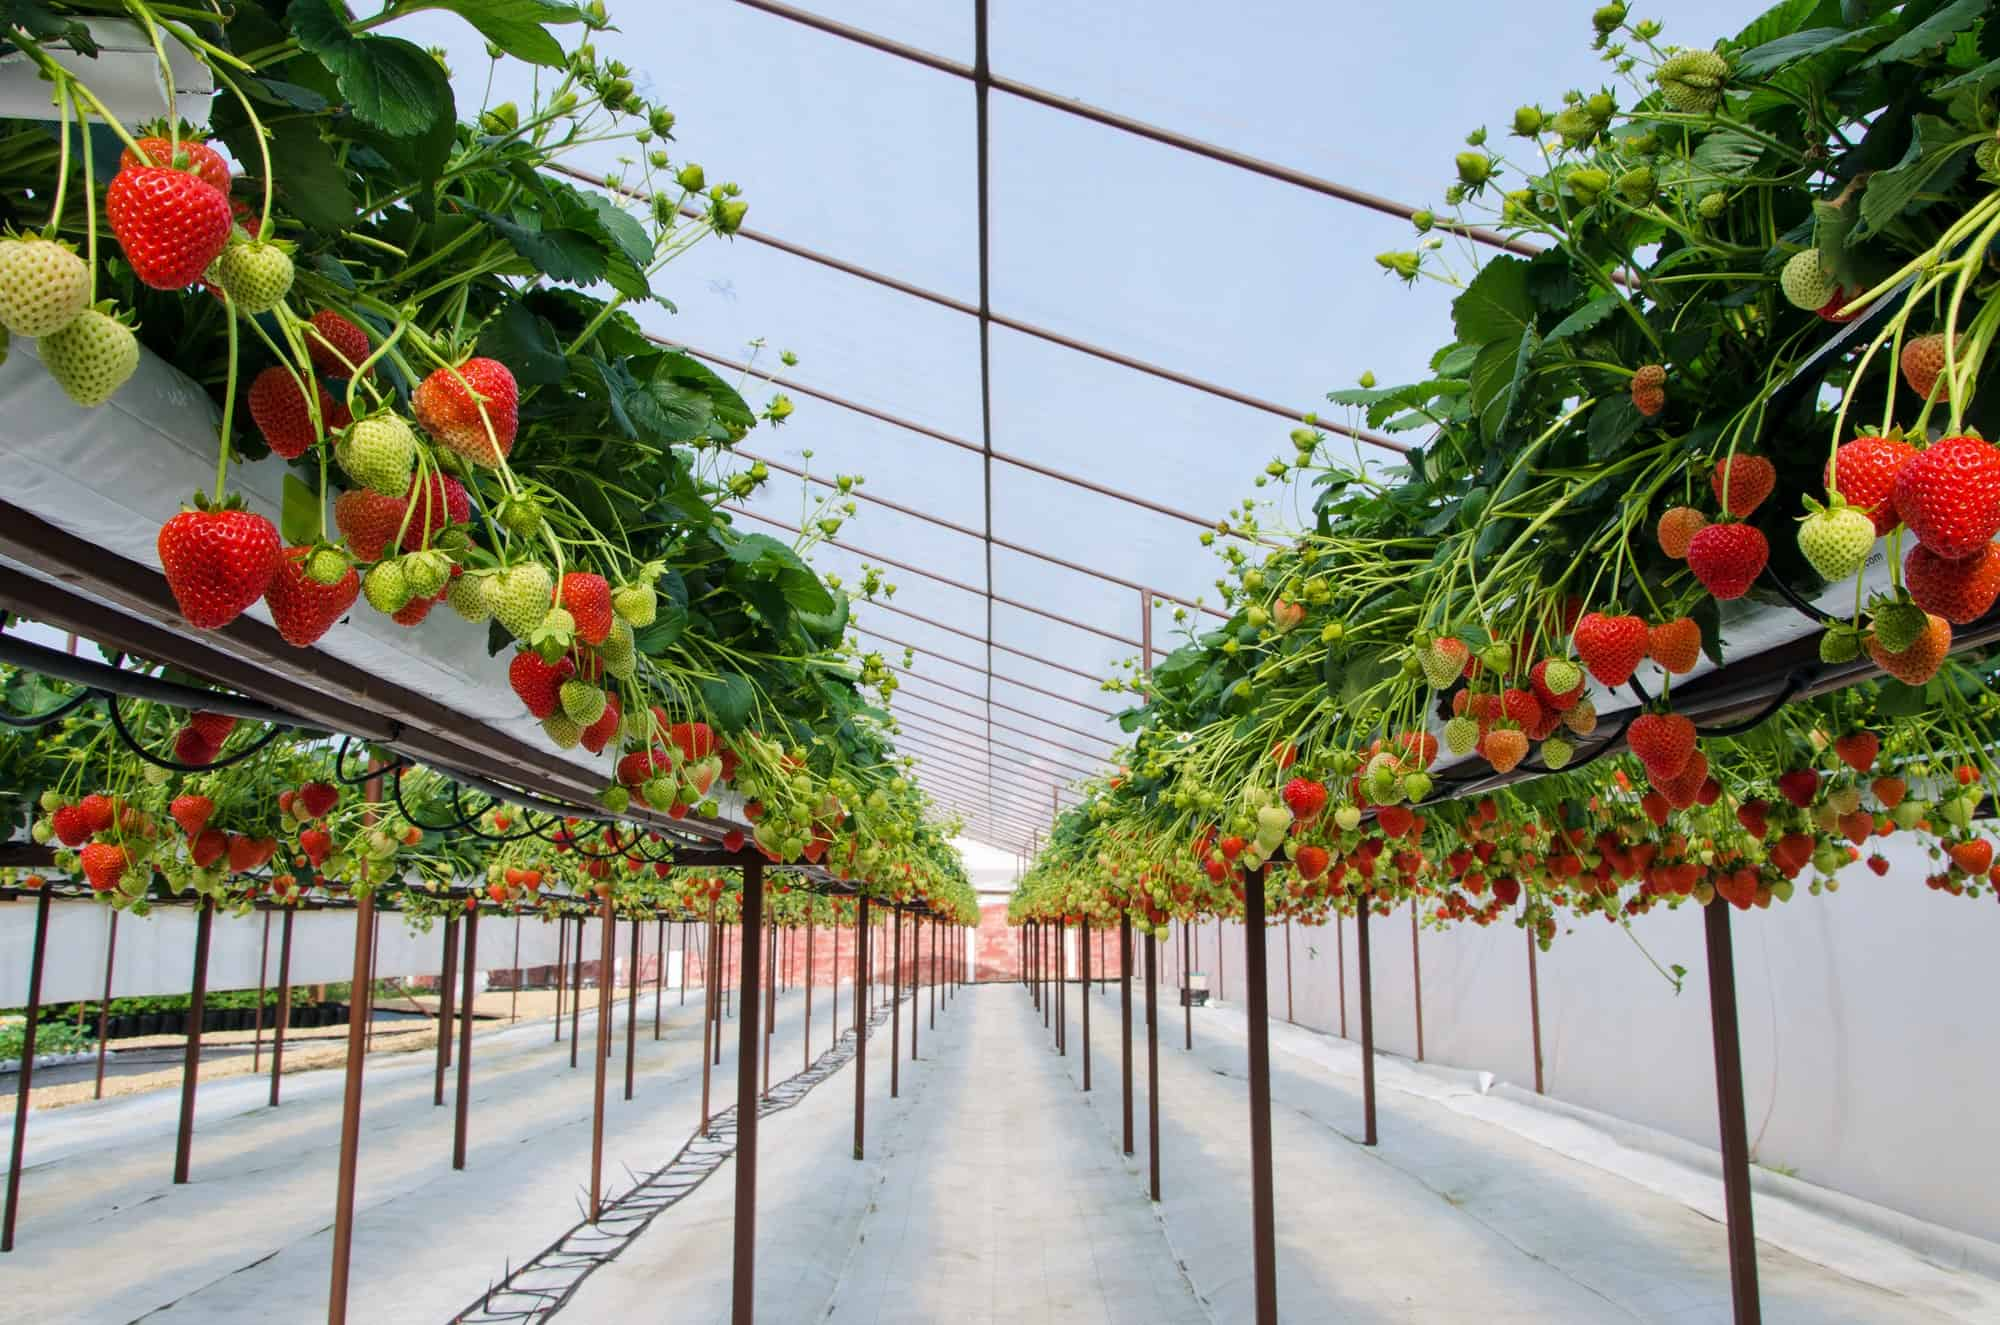 Can Peppers And Strawberries Be Planted Together?